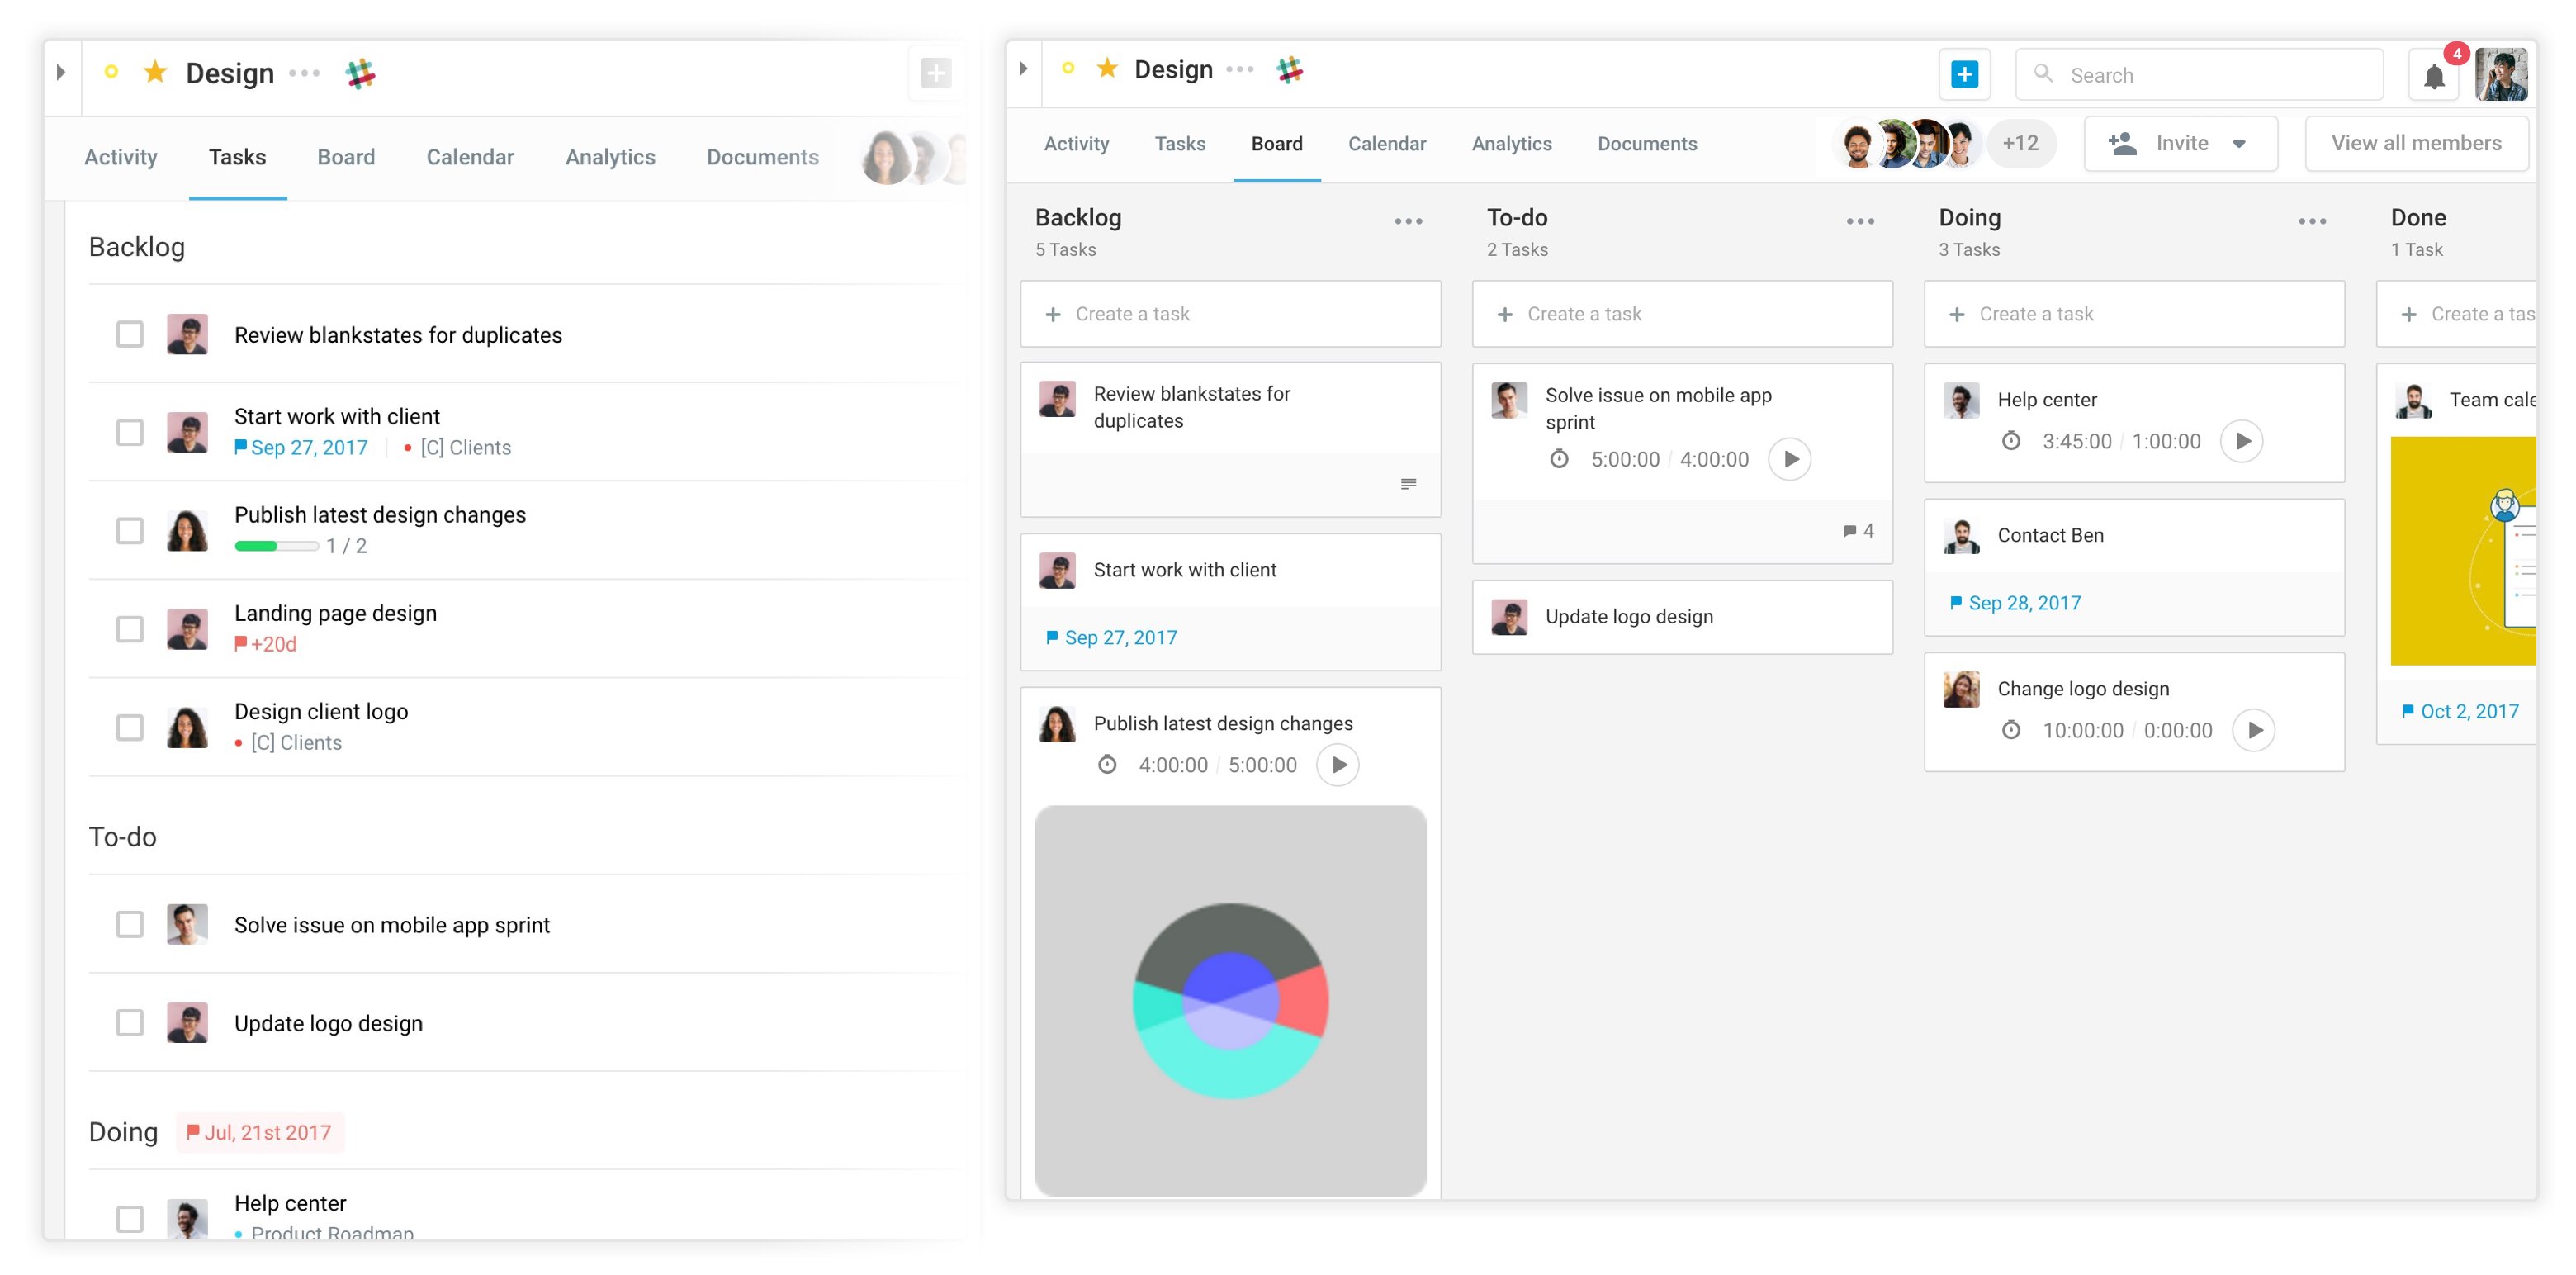 Task lists can be visualized as Task Boards